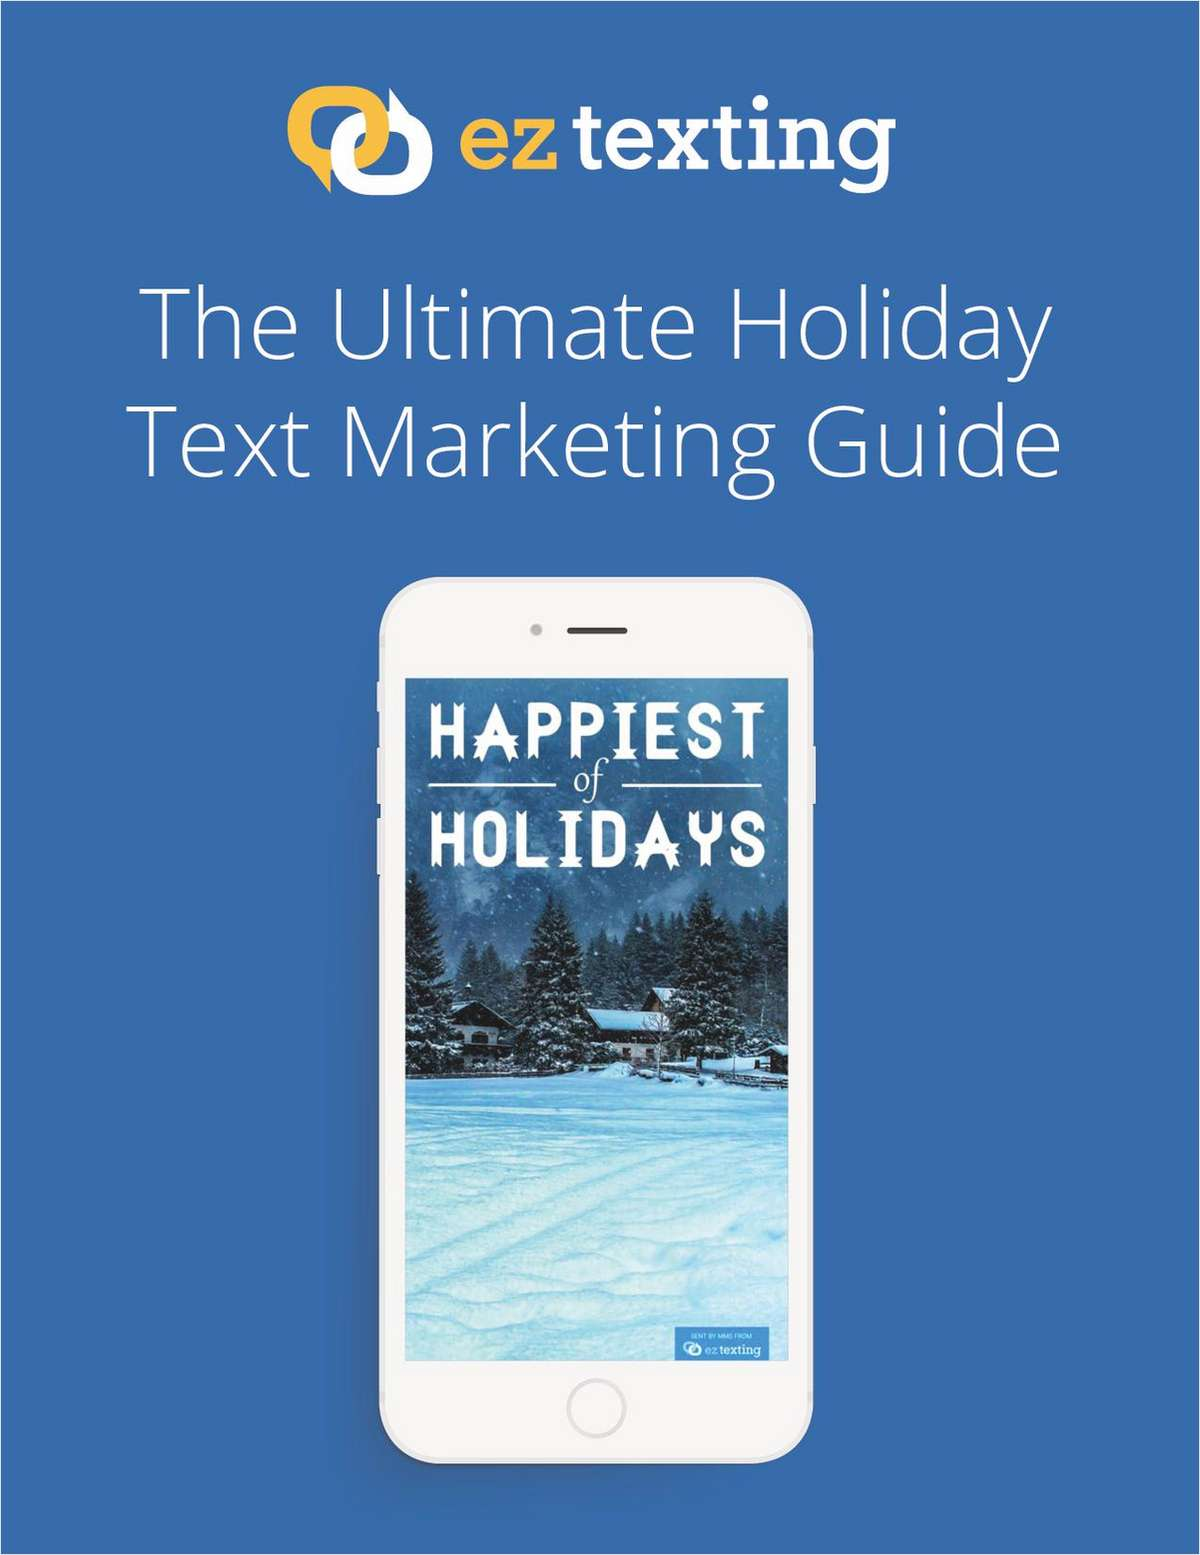 EZ Texting Holiday Text Marketing Guide Free eGuide